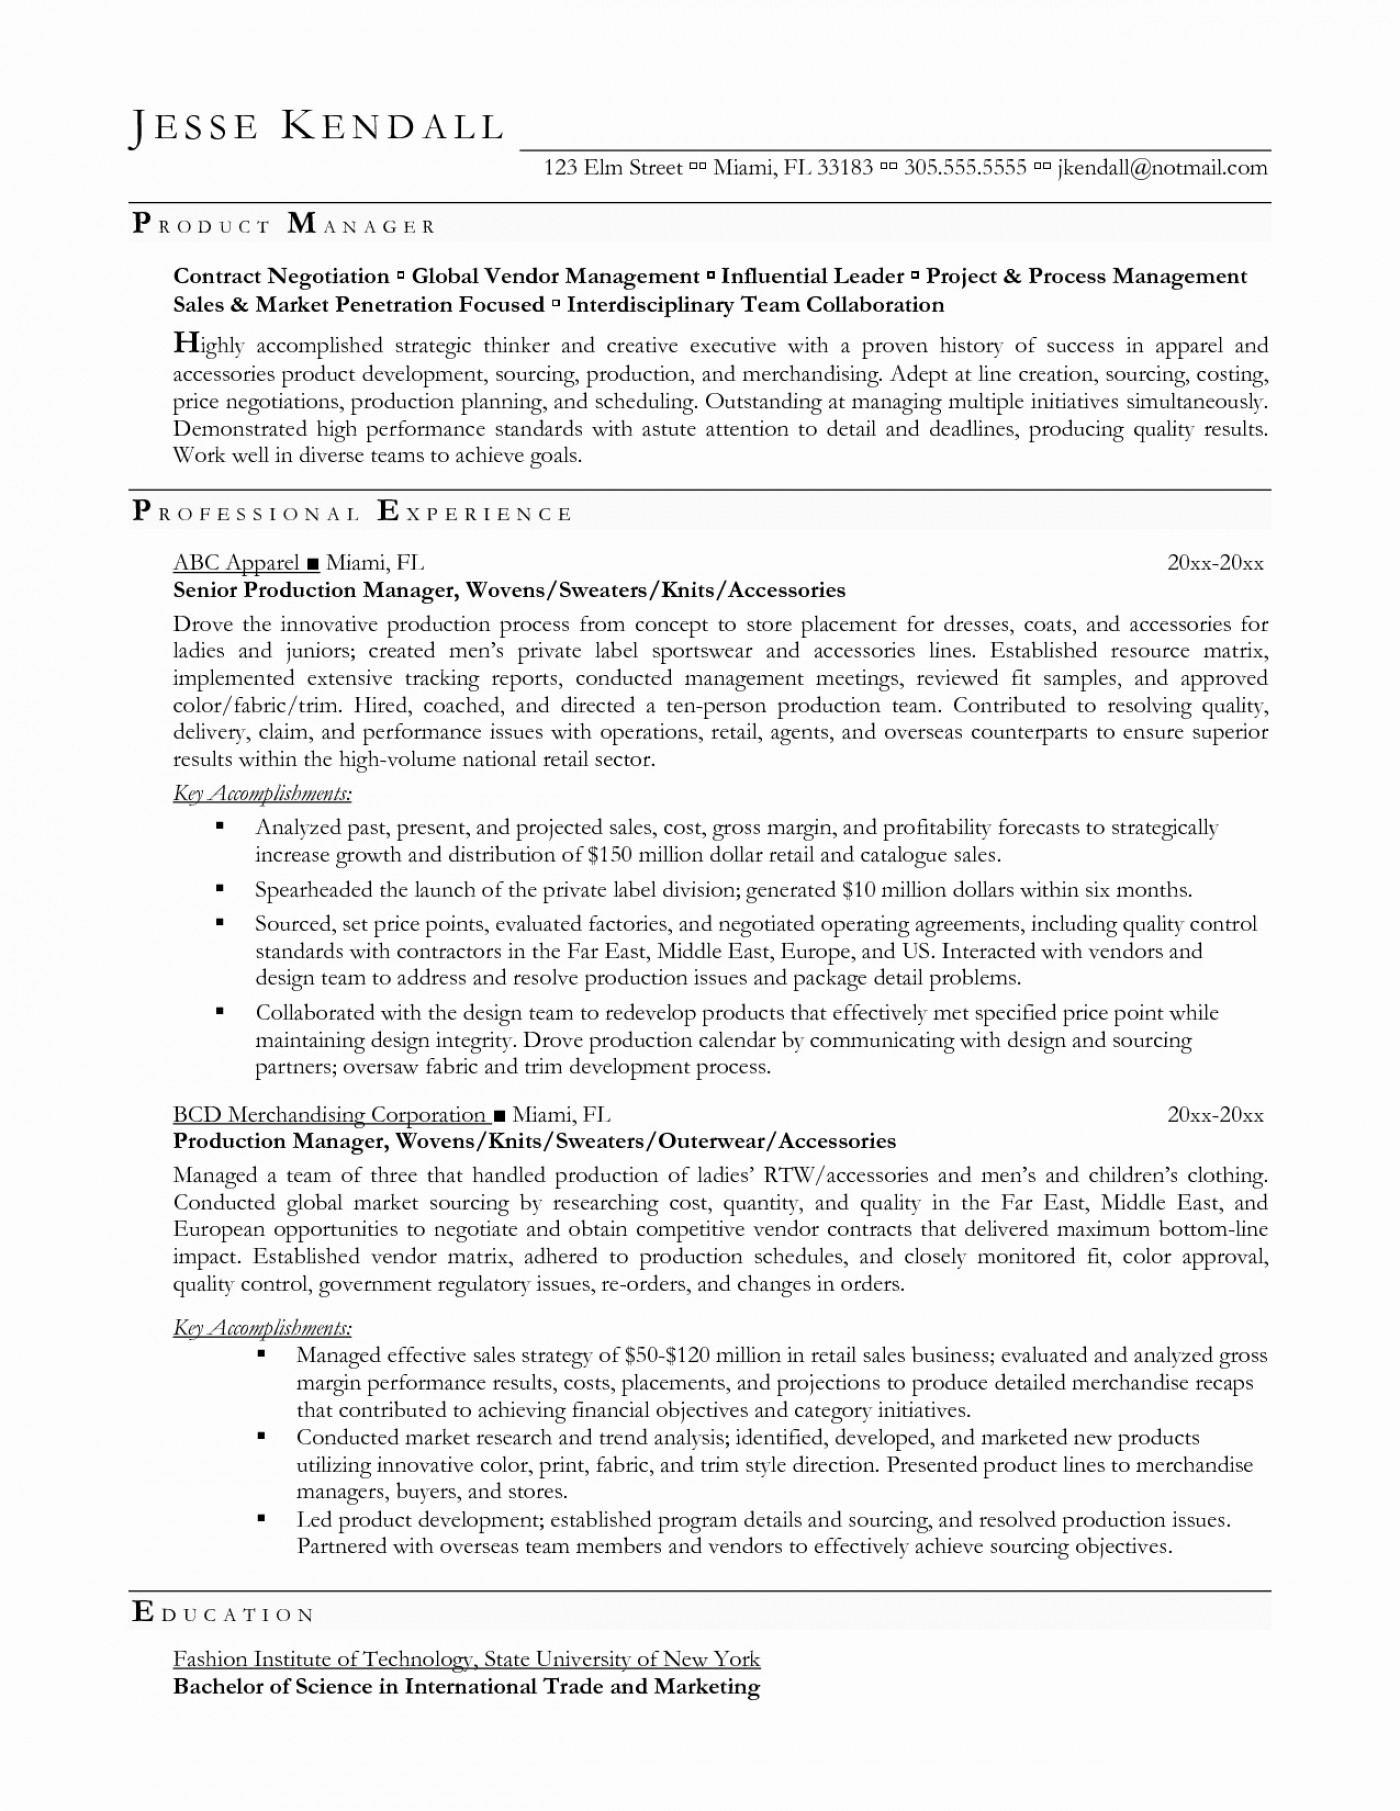 009 Production Supervisor Resume Format Best Ofssay Writing